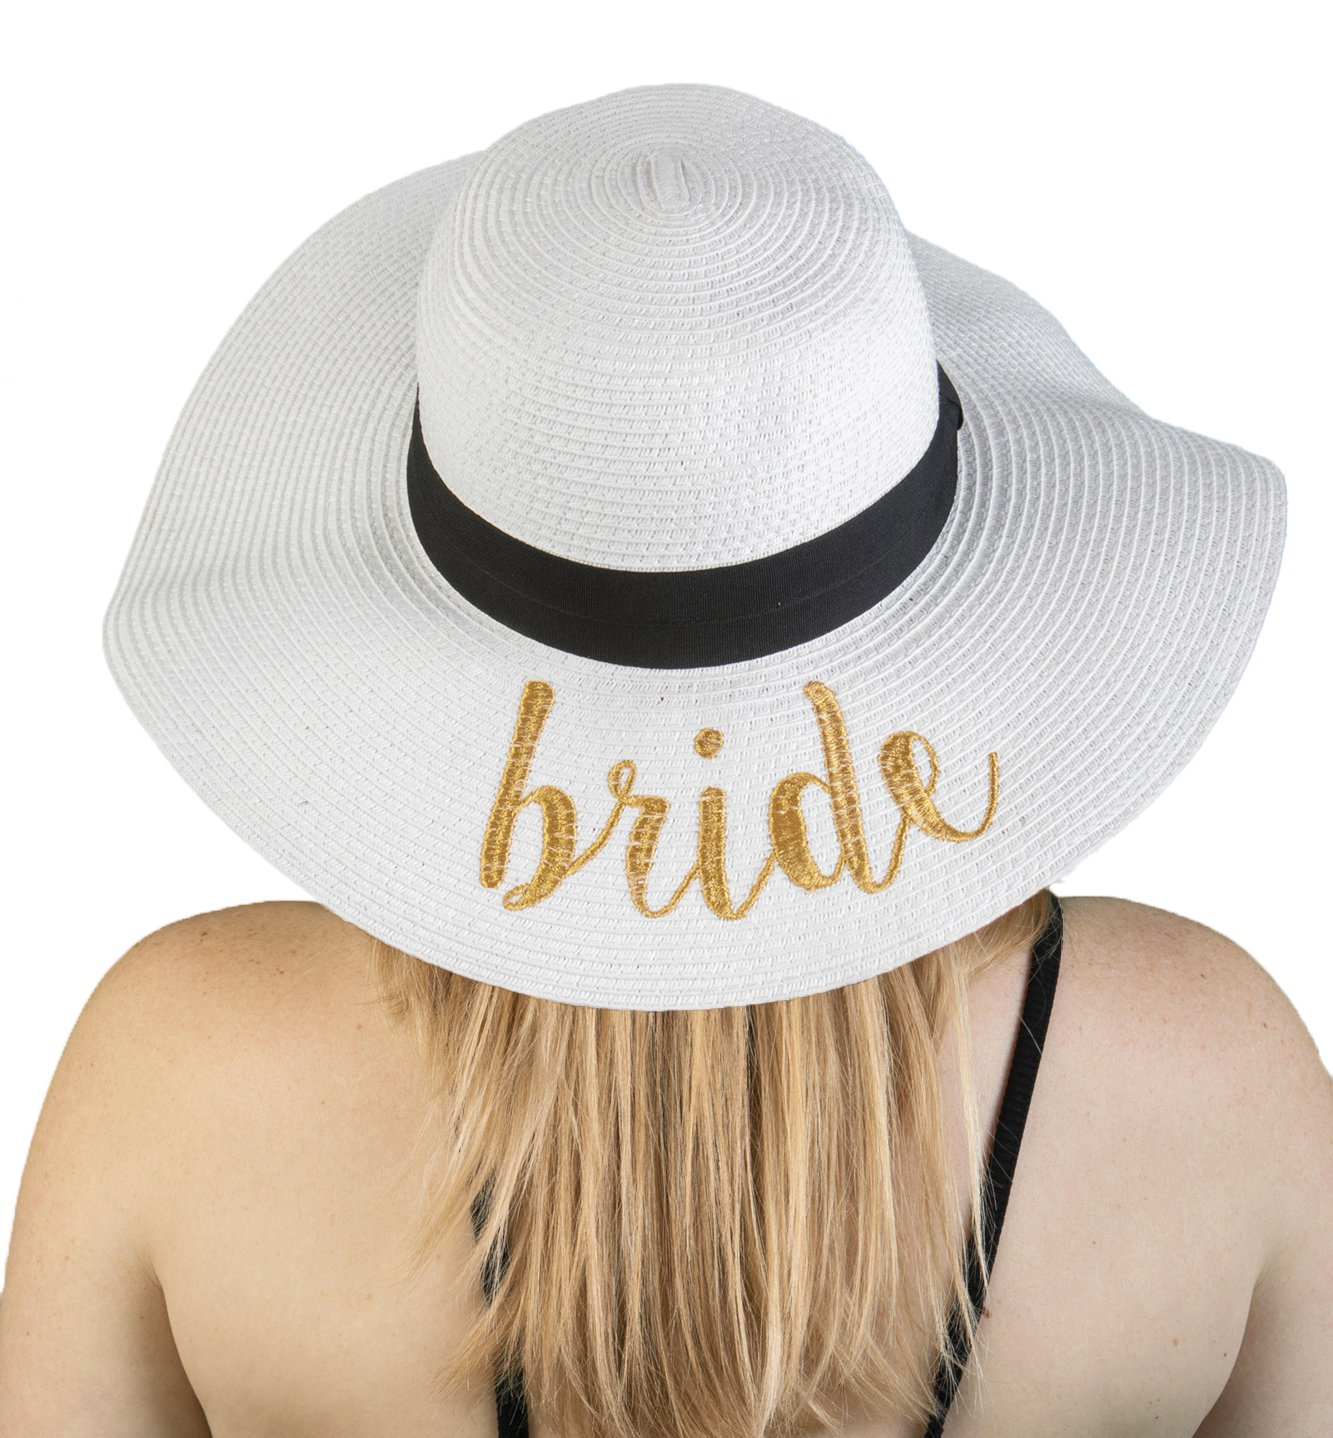 H-2017-B-WG Embroidered Bridal Sun Hat - Bride (White/Gold)